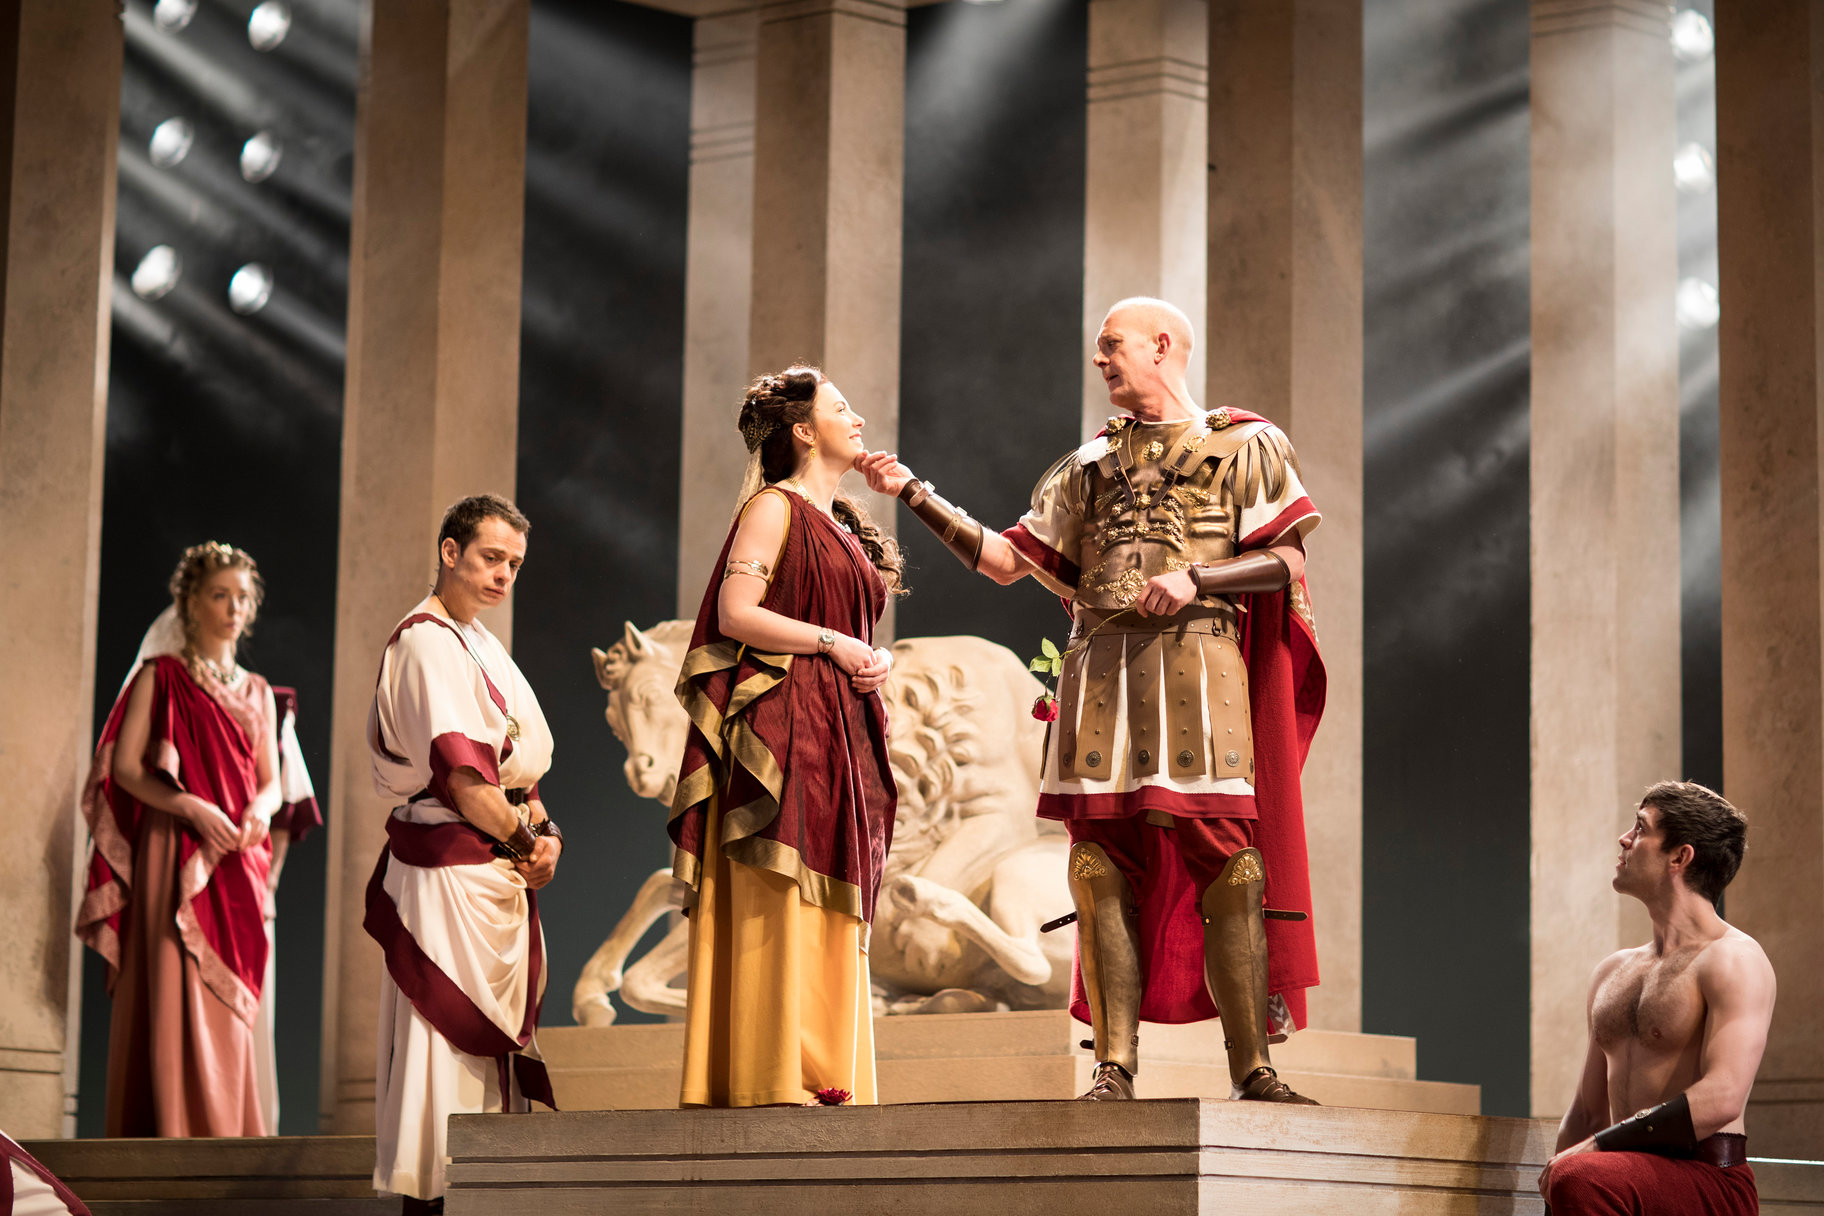 Julius Caesar stands next to Calphurnia with his hand on the underside of her chin. Portia, Brutus and Mark Antony observe.